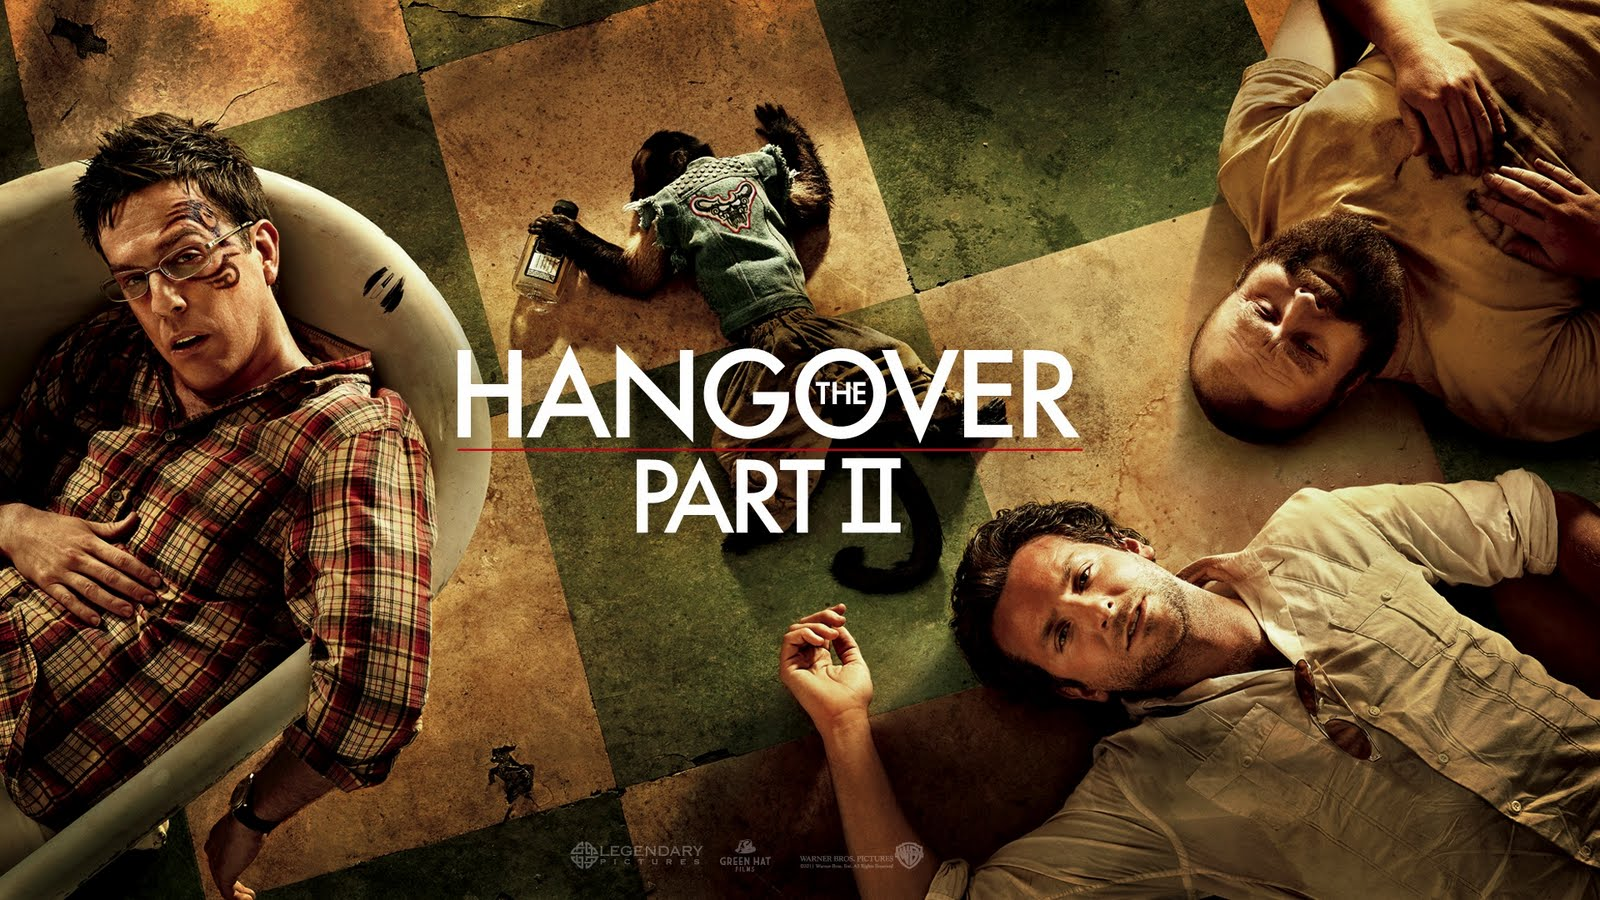 The hangover 4 release date in Perth